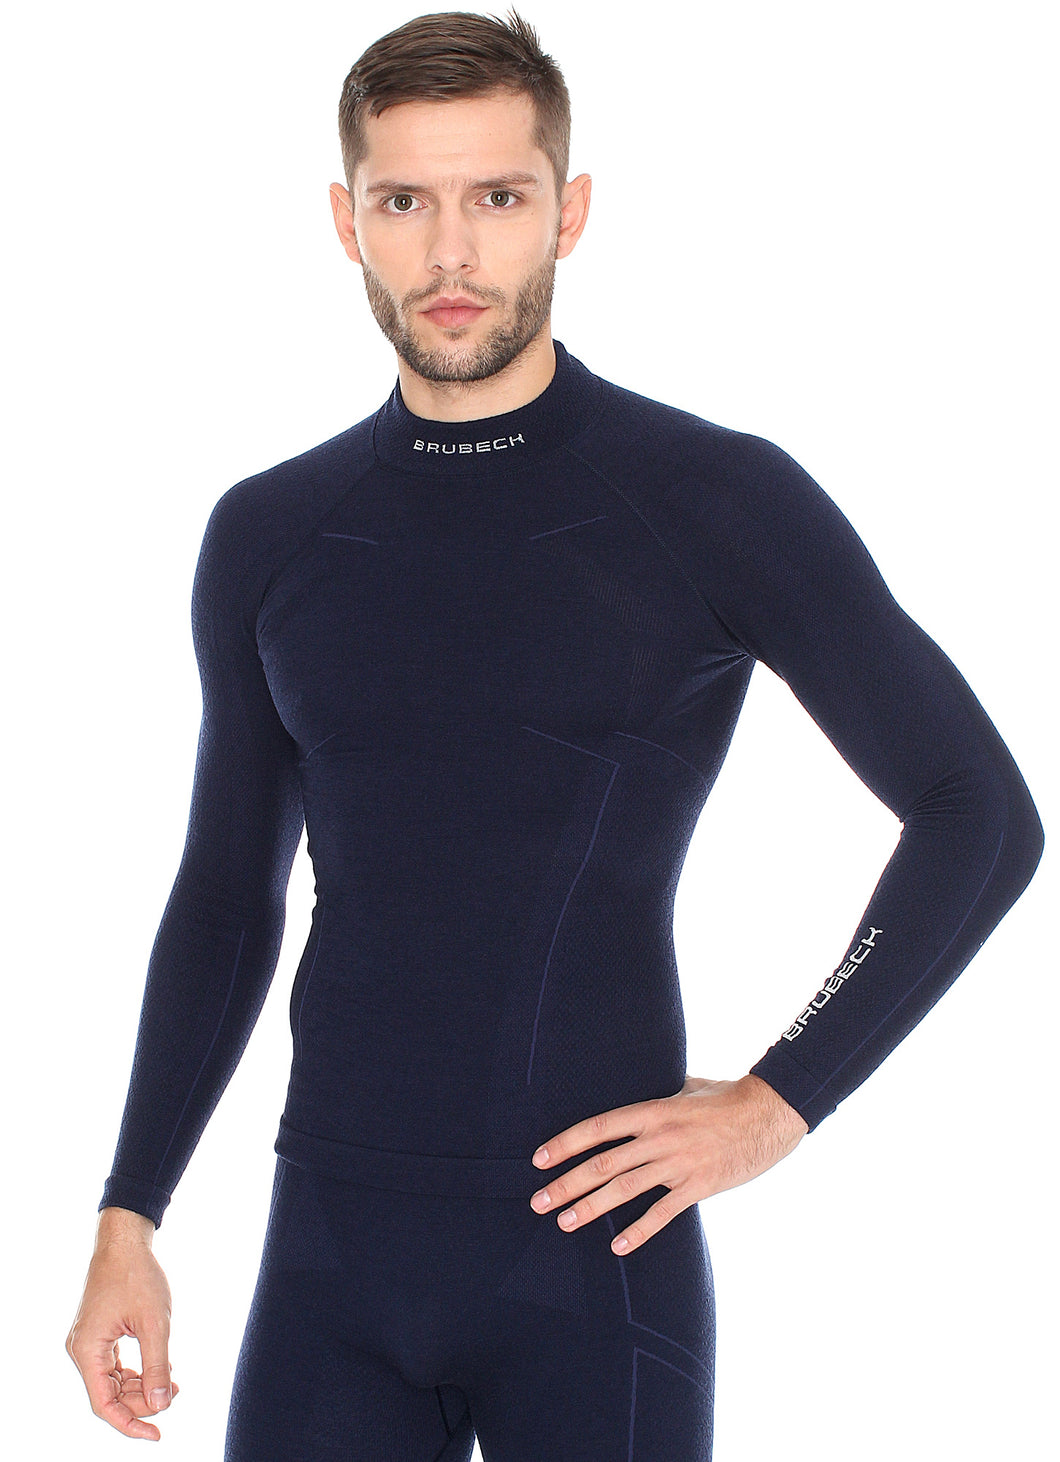 Men's Top EXTREME WOOL Long Sleeve